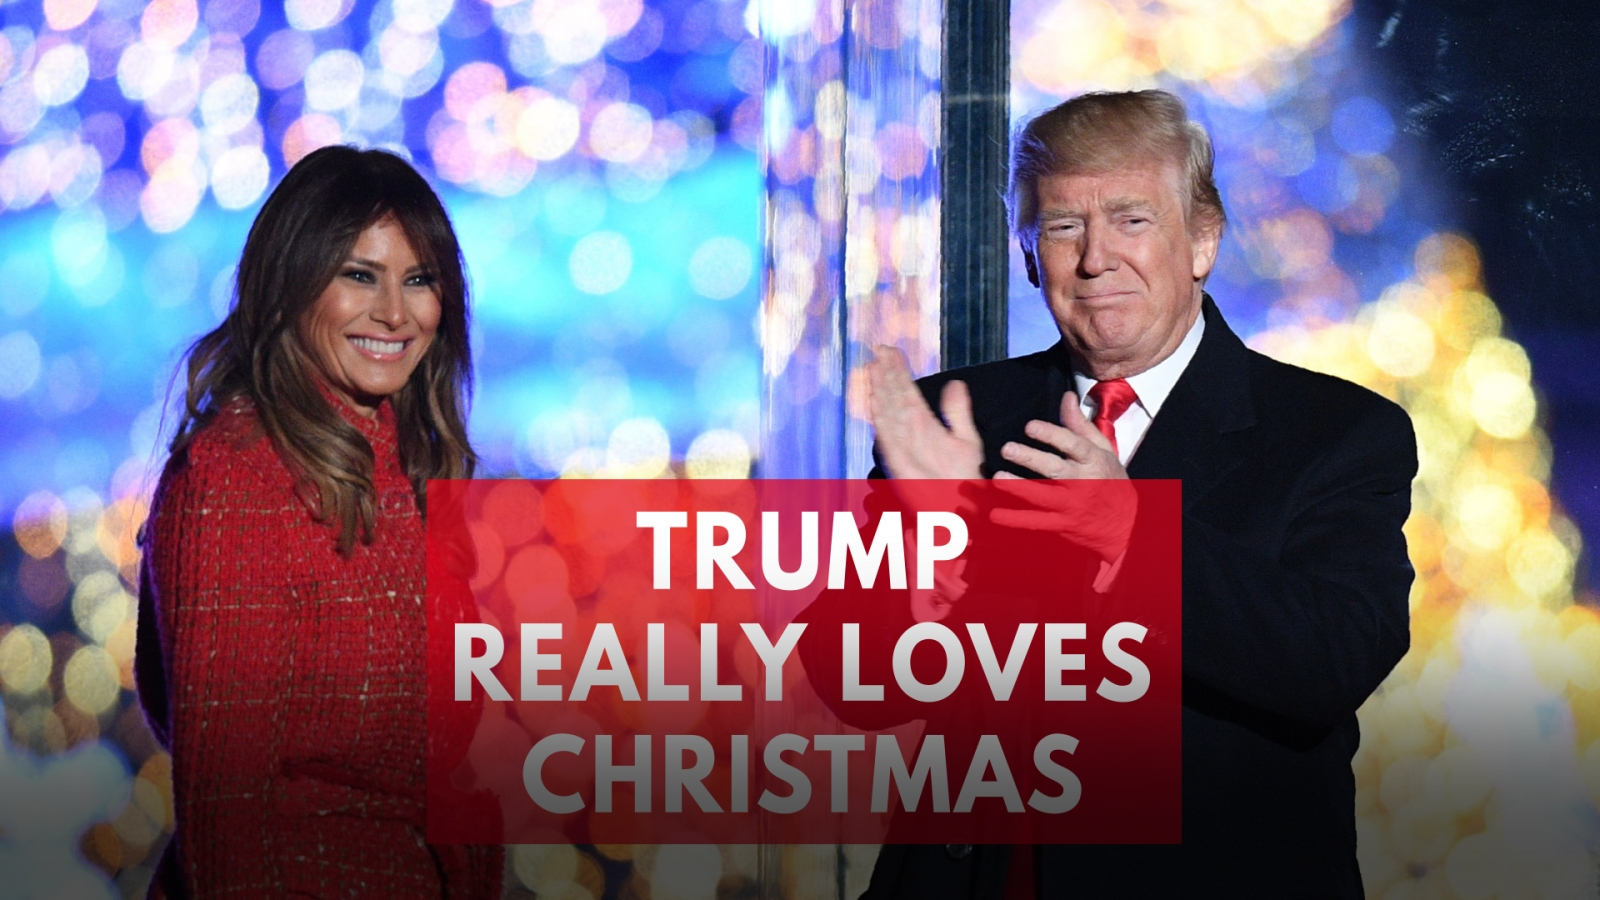 trump-wants-to-make-christmas-great-again